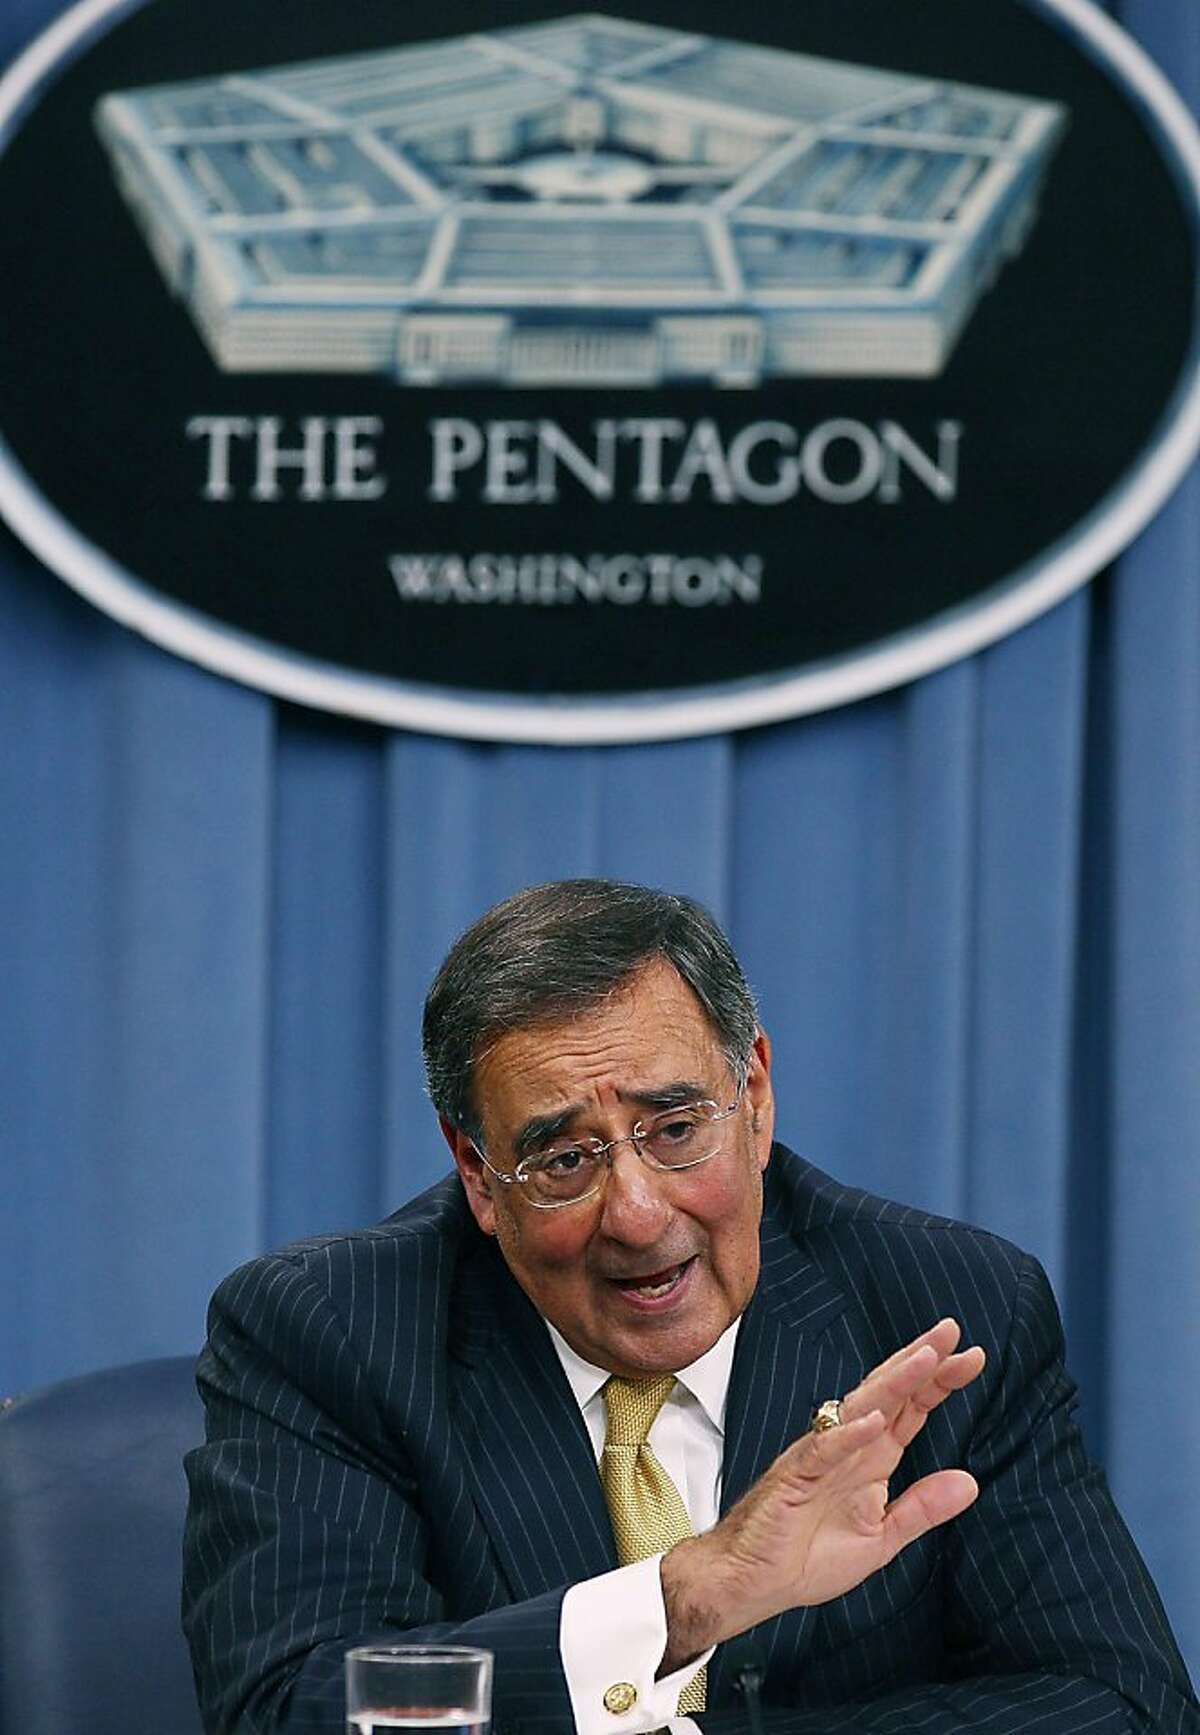 ARLINGTON, VA - AUGUST 04: Secretary of Defense Leon Panetta speaks during a briefing at the Pentagon, on August 4, 2011 in Arlington, Virginia. Panetta warned against defense budget cuts during his first media briefing since taking over as Secretary of Defense.